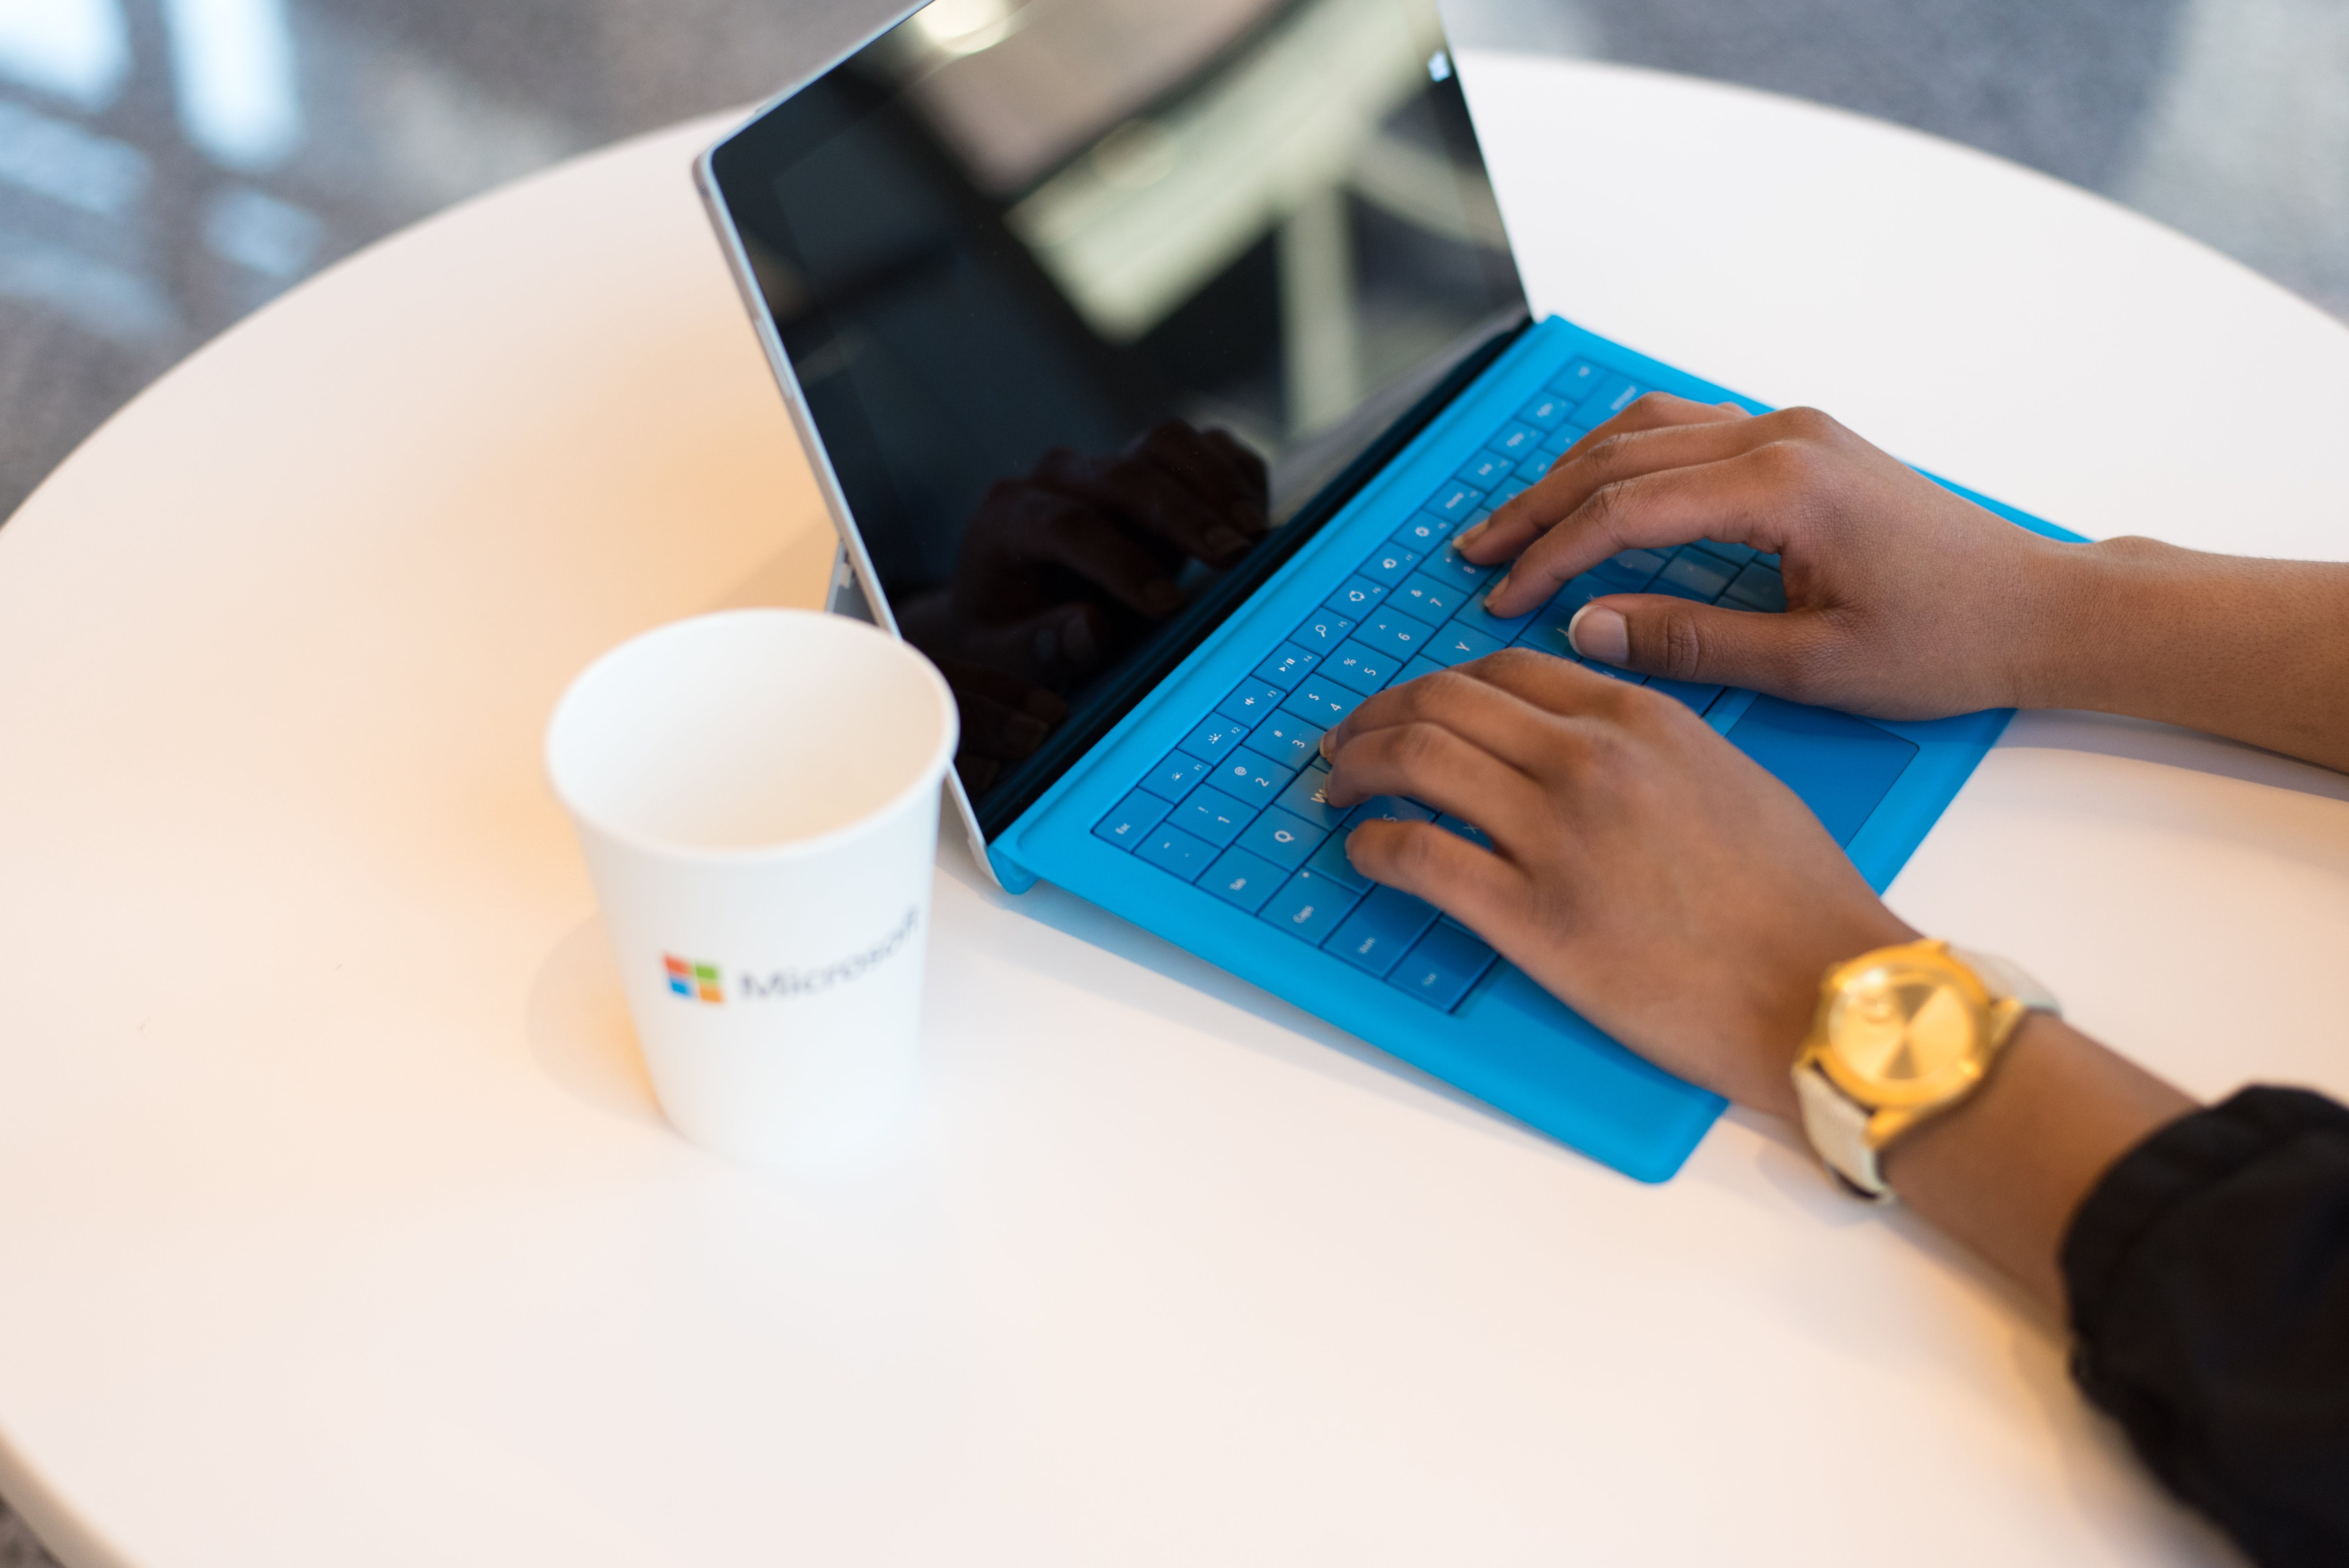 Person Wearing Round Gold-colored Watch Using Black Tablet Computer With Blue Detachable Keyboard on Round White Wooden Table